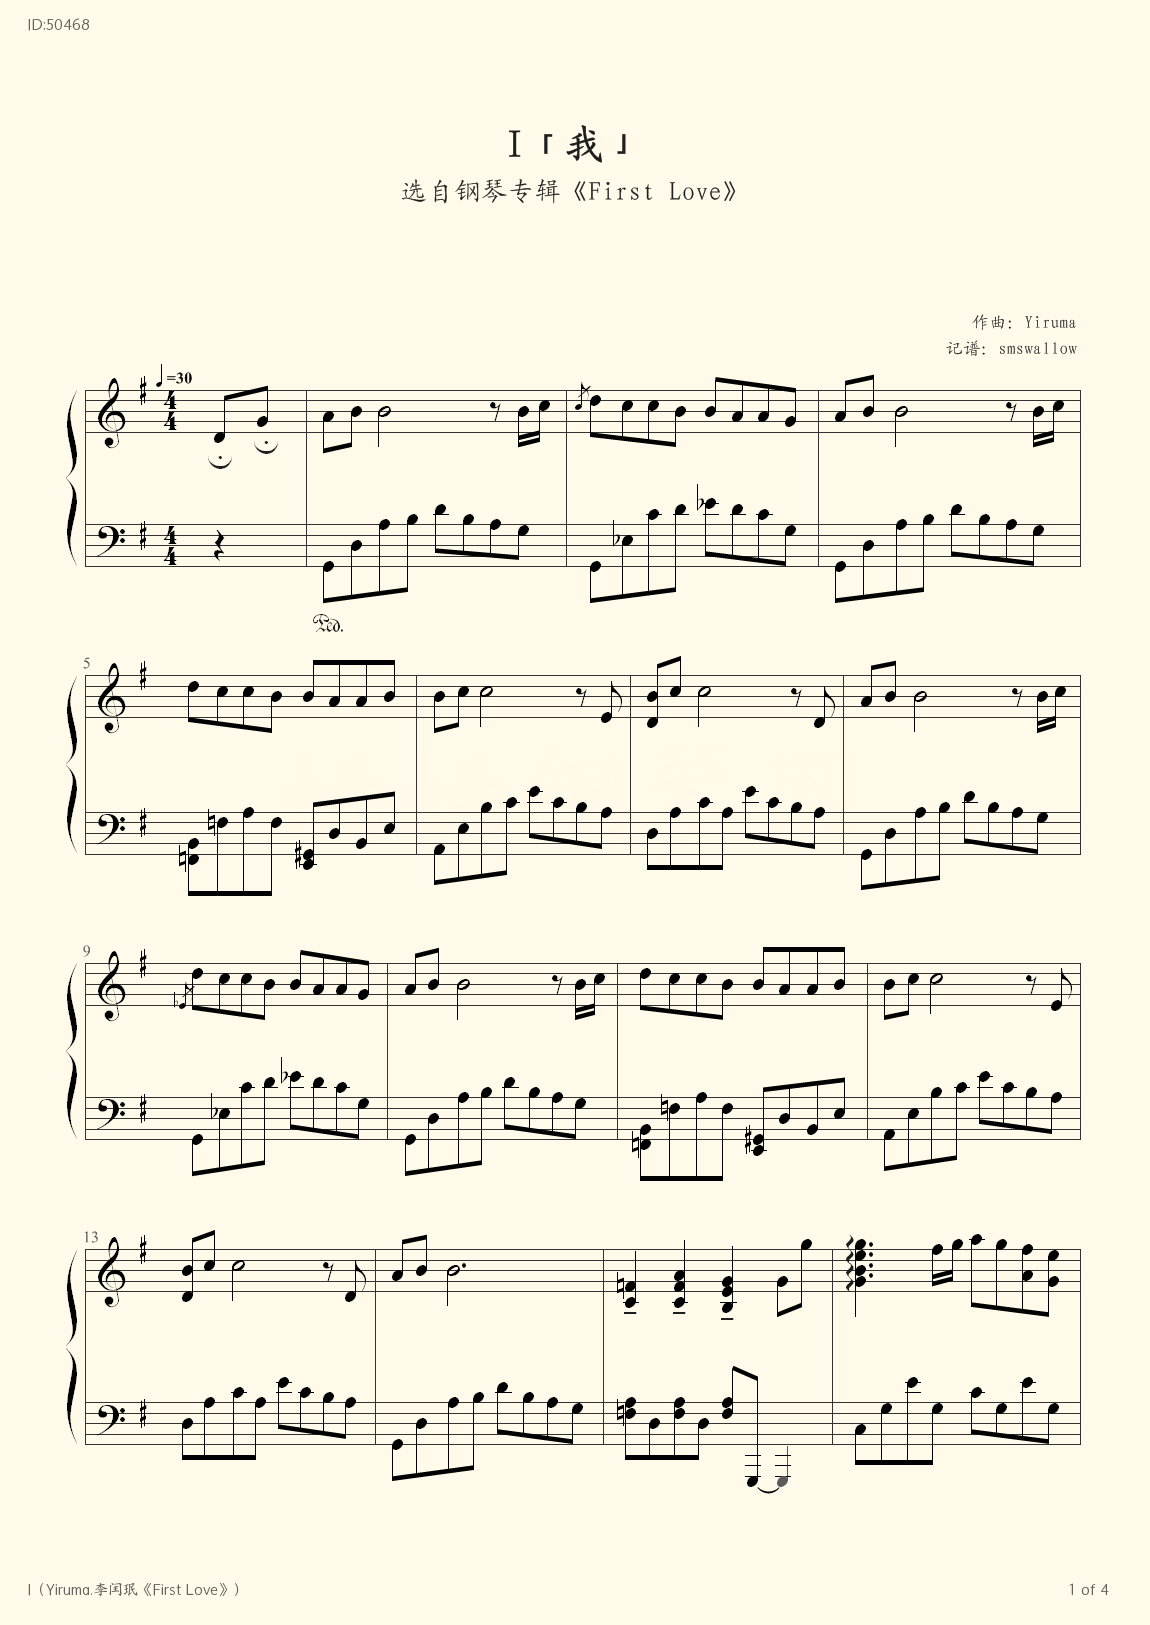 I Yiruma First Love - Yiruma  - first page